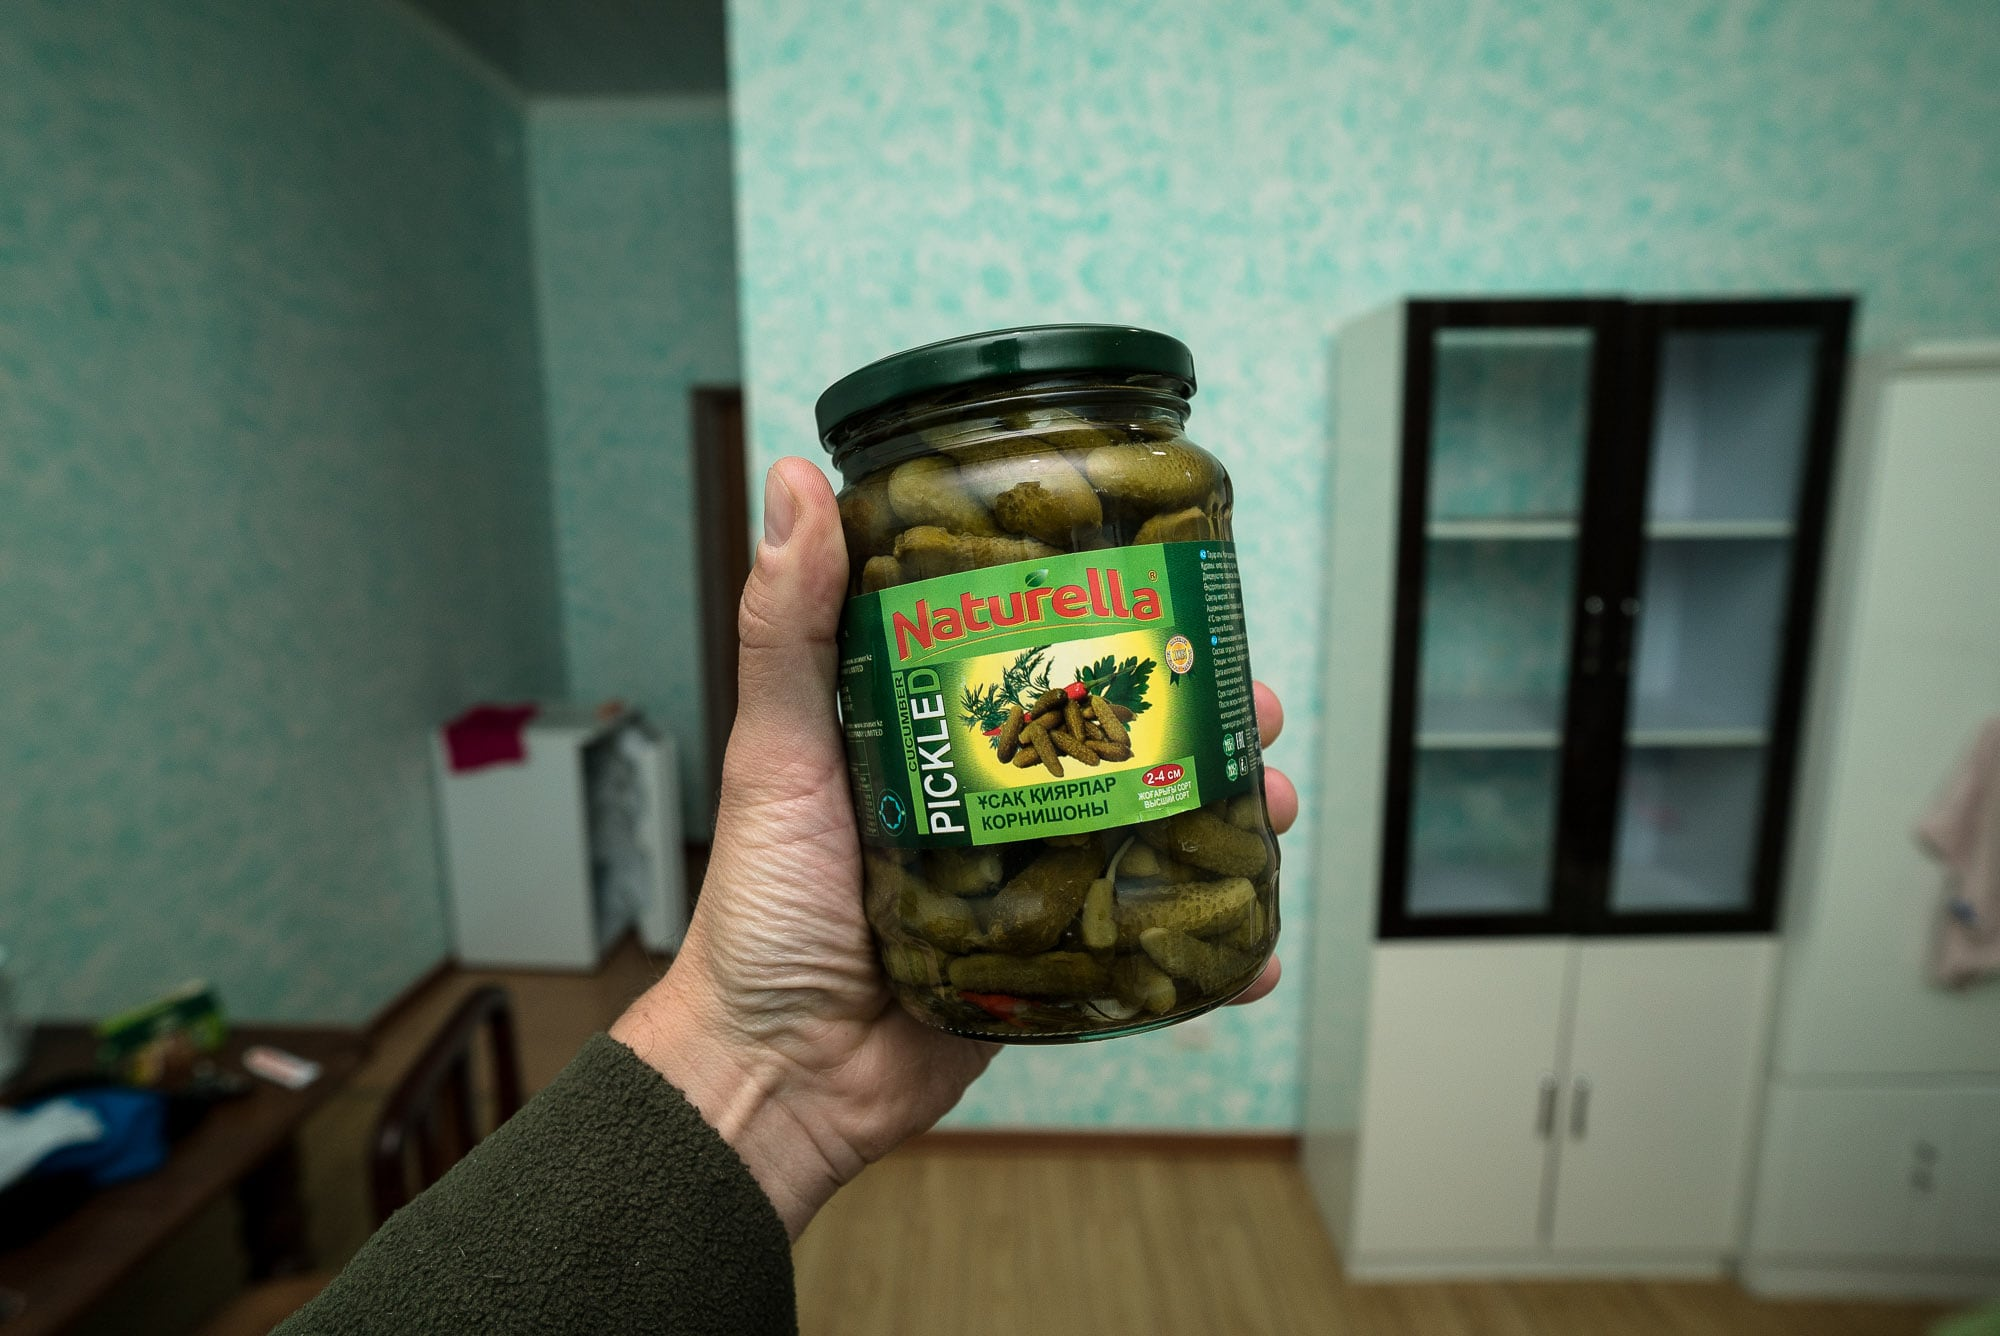 Naturella pickles